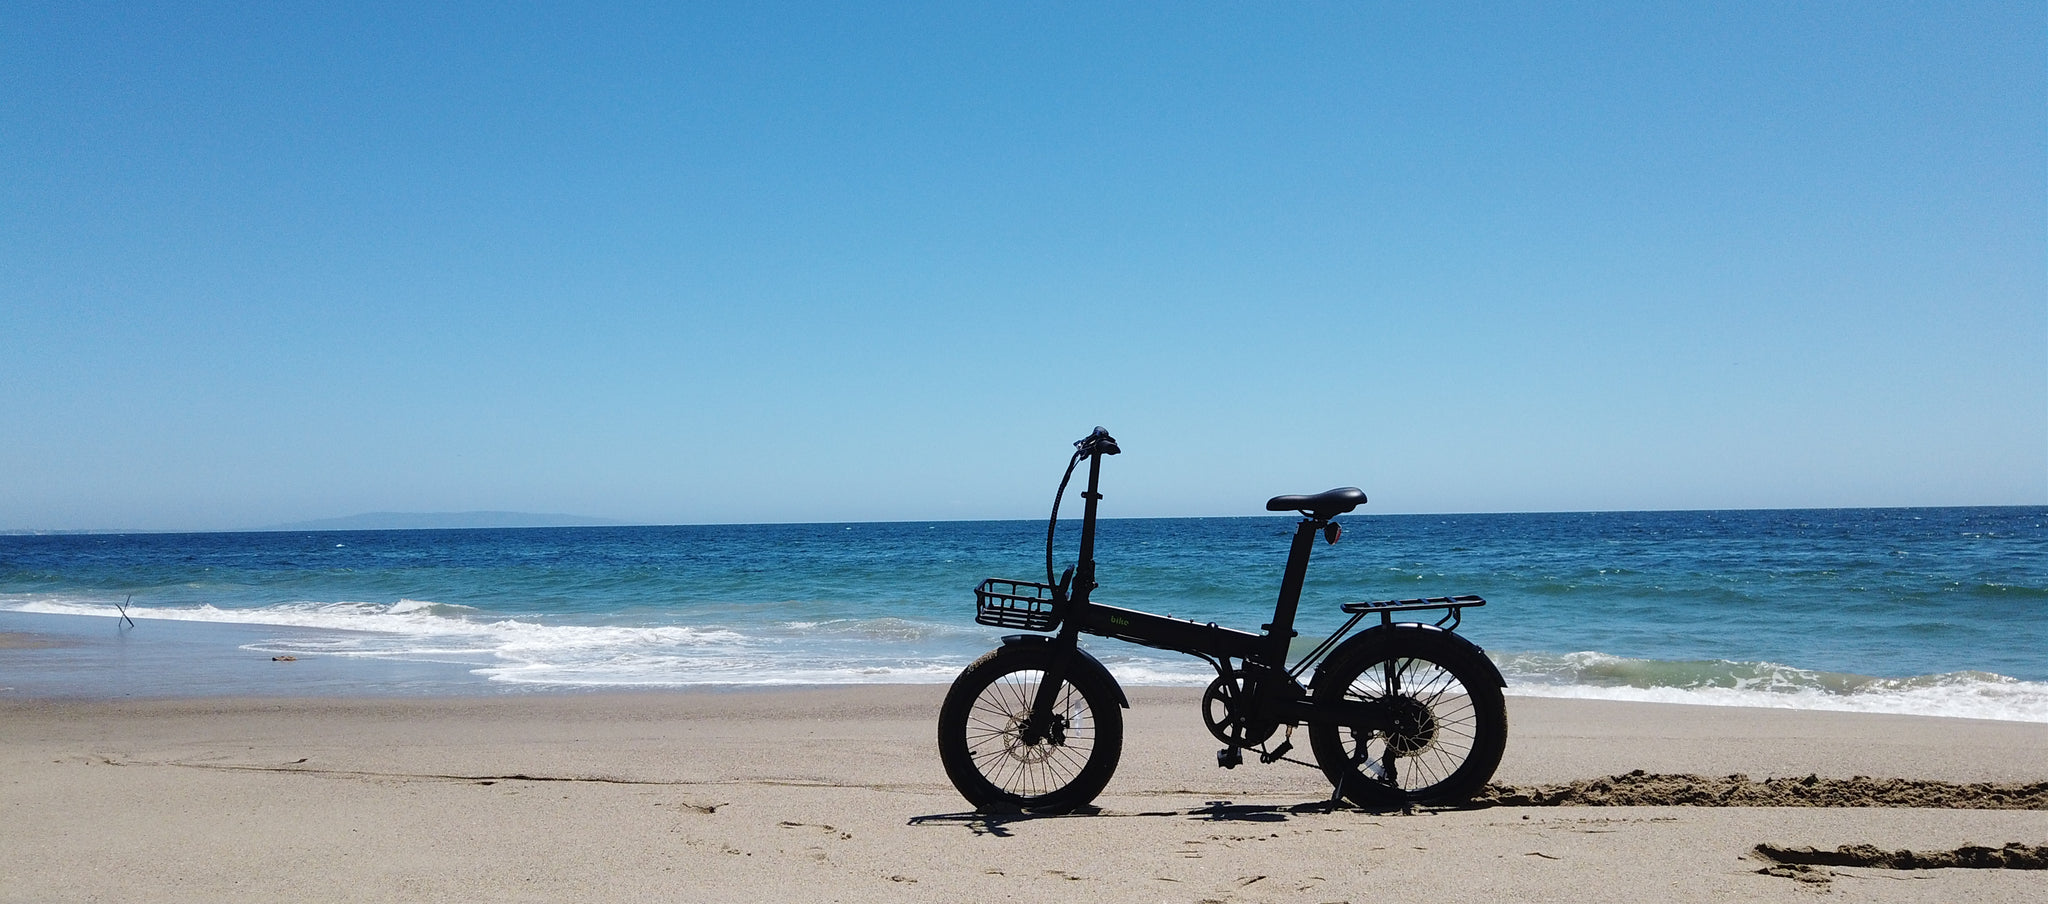 2020 year of Brand New electric bike by Qualisports Dolphin